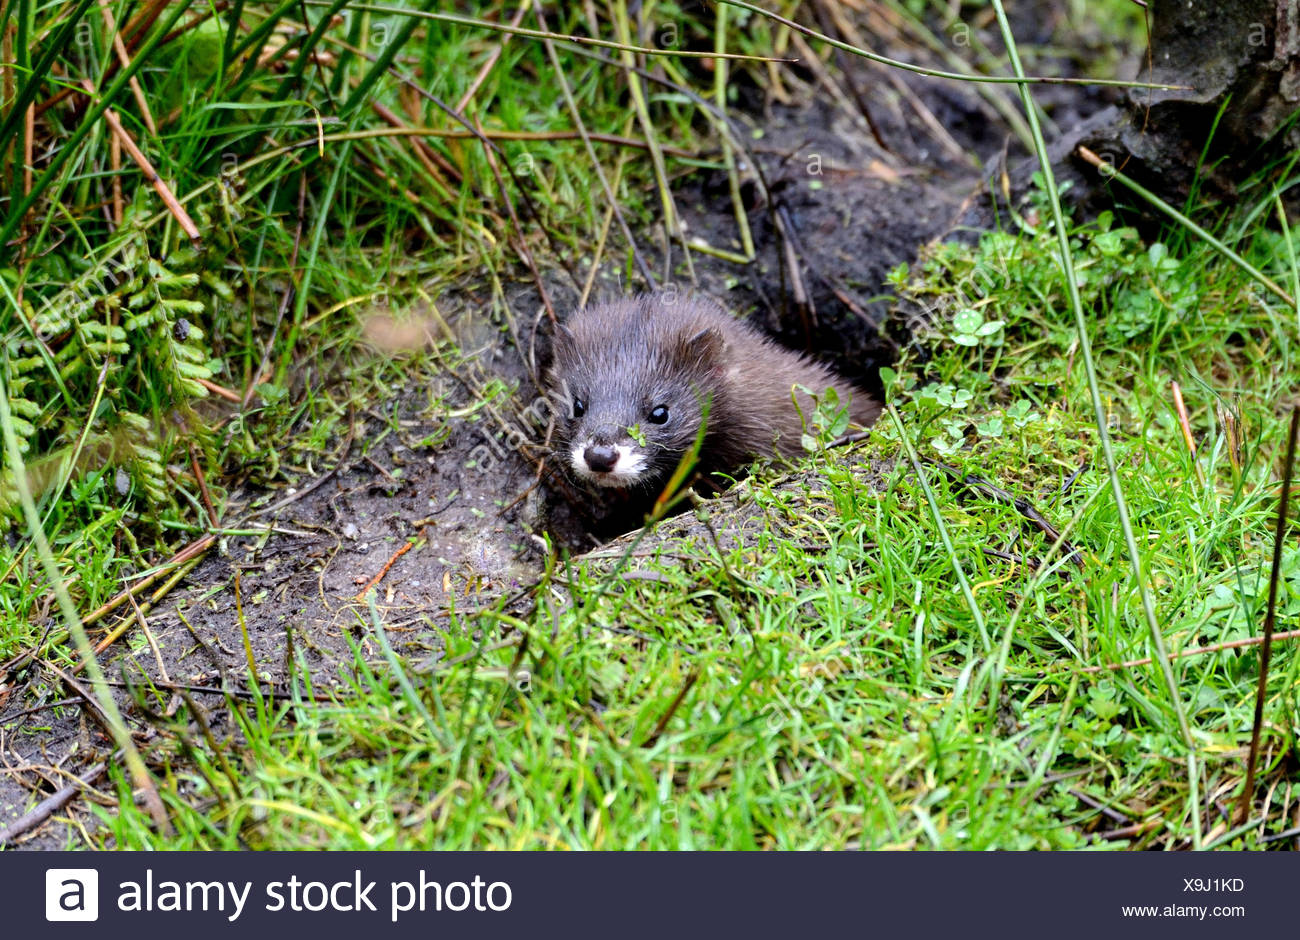 European mink, Mustela lutreola, mustelidae, predator, robber, Endemical, canids, endangered, wild animal, Germany - Stock Image